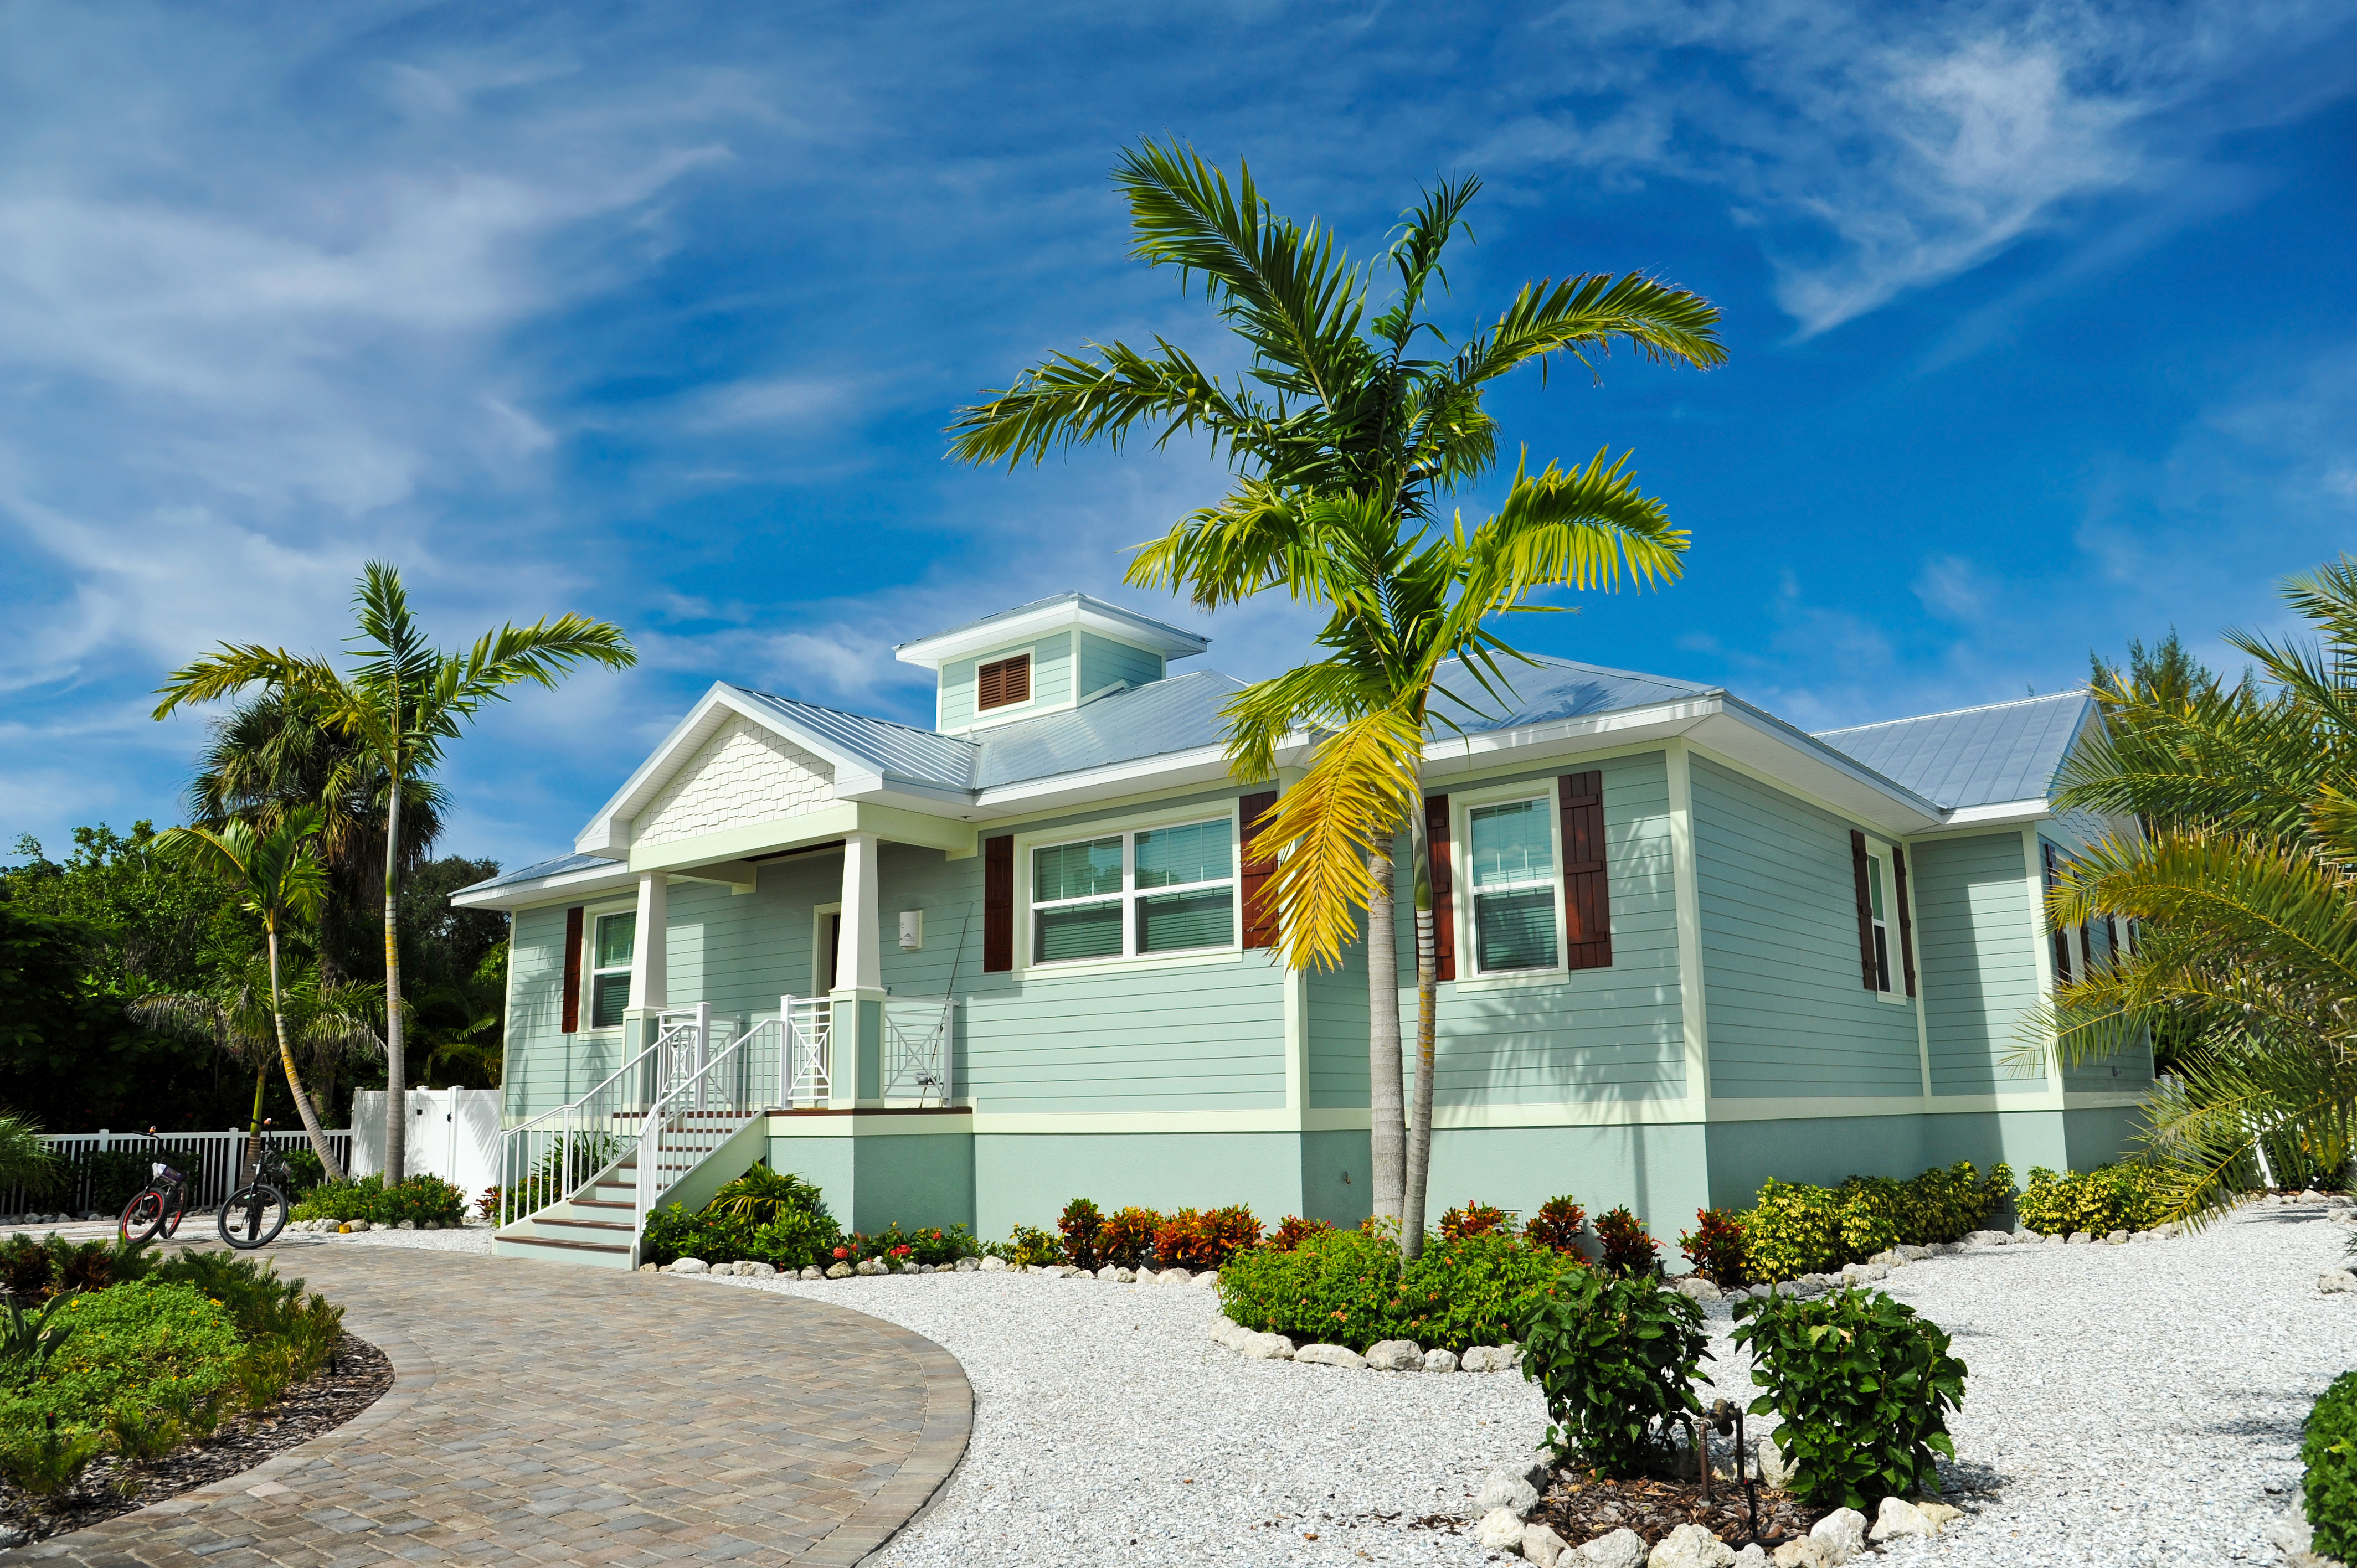 front view of a sea green beachhouse with palm trees and pebbles lining the stone driveway